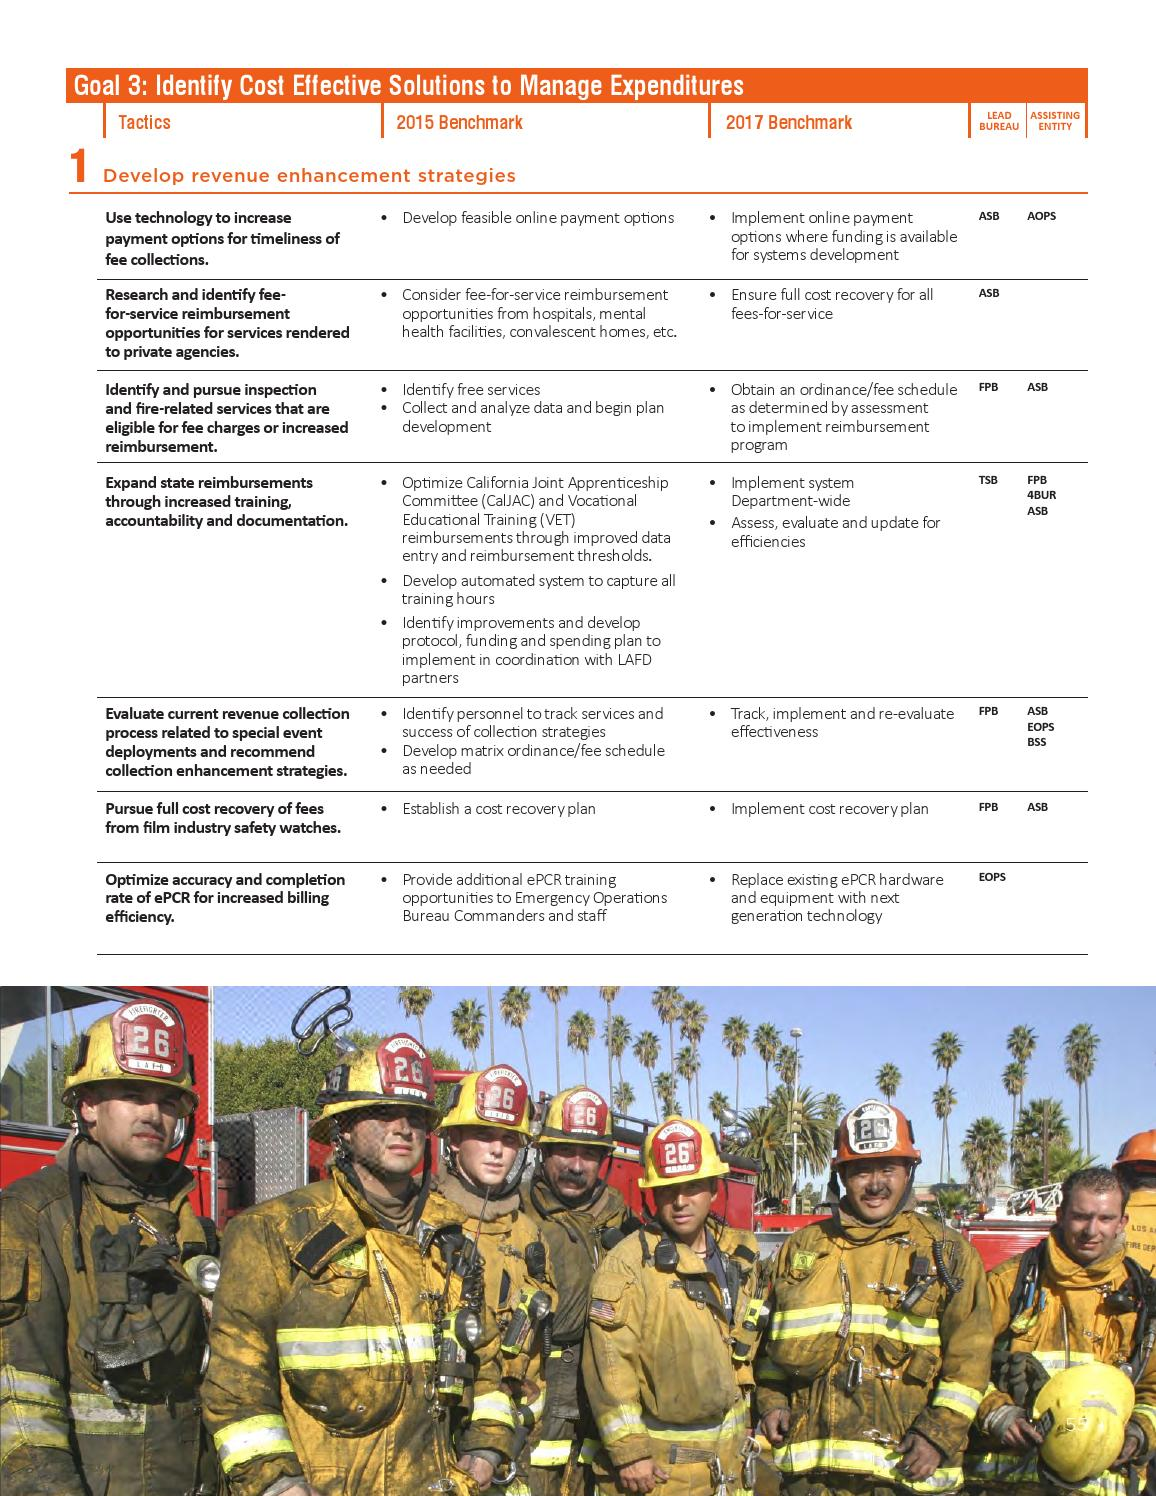 LAFD STRATEGIC PLAN 2015-2017 by Los Angeles Fire Department